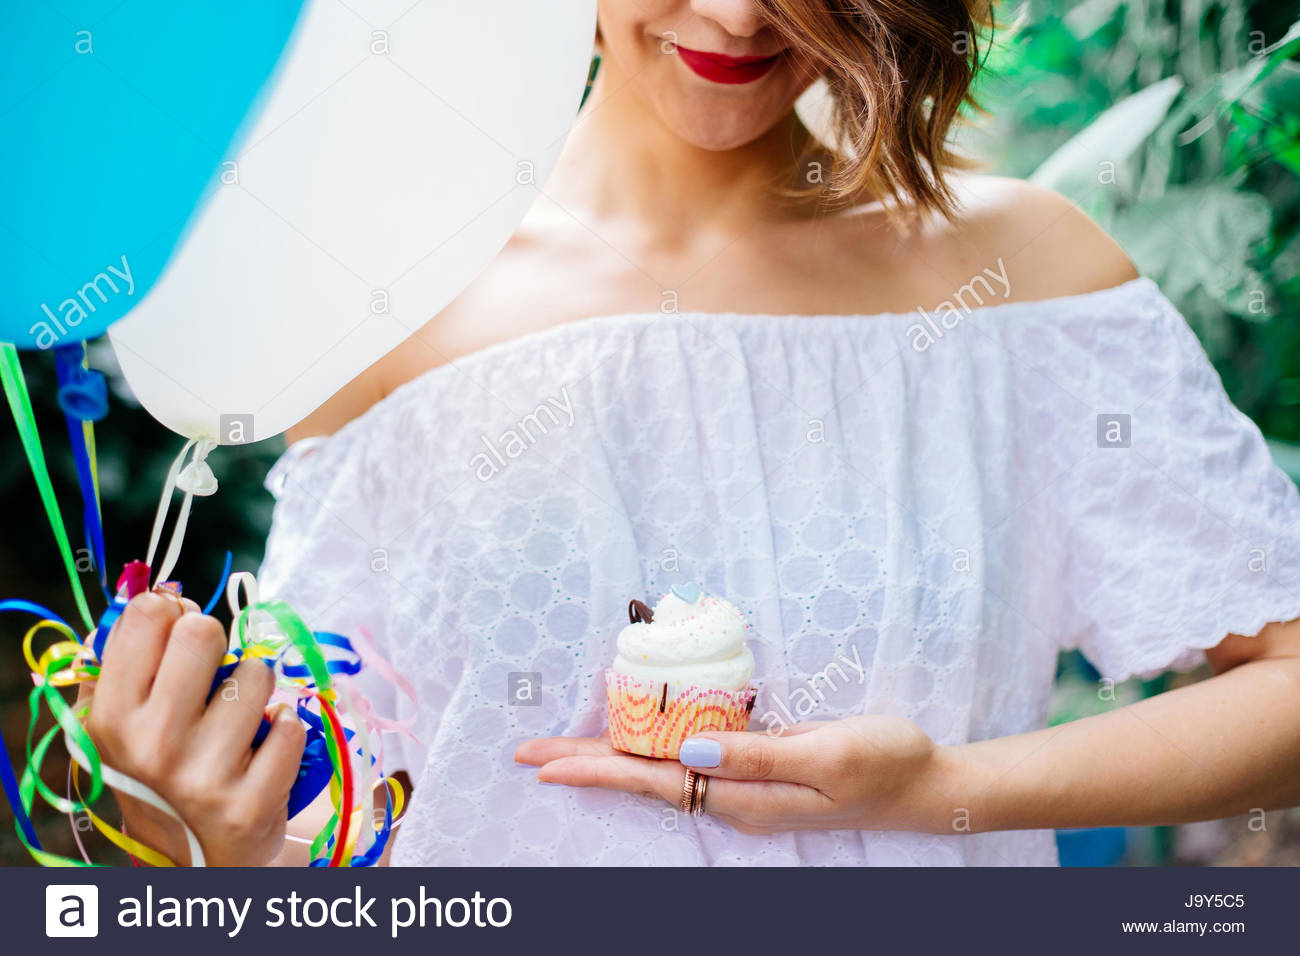 Women is happy with her birthday cake - Stock Image